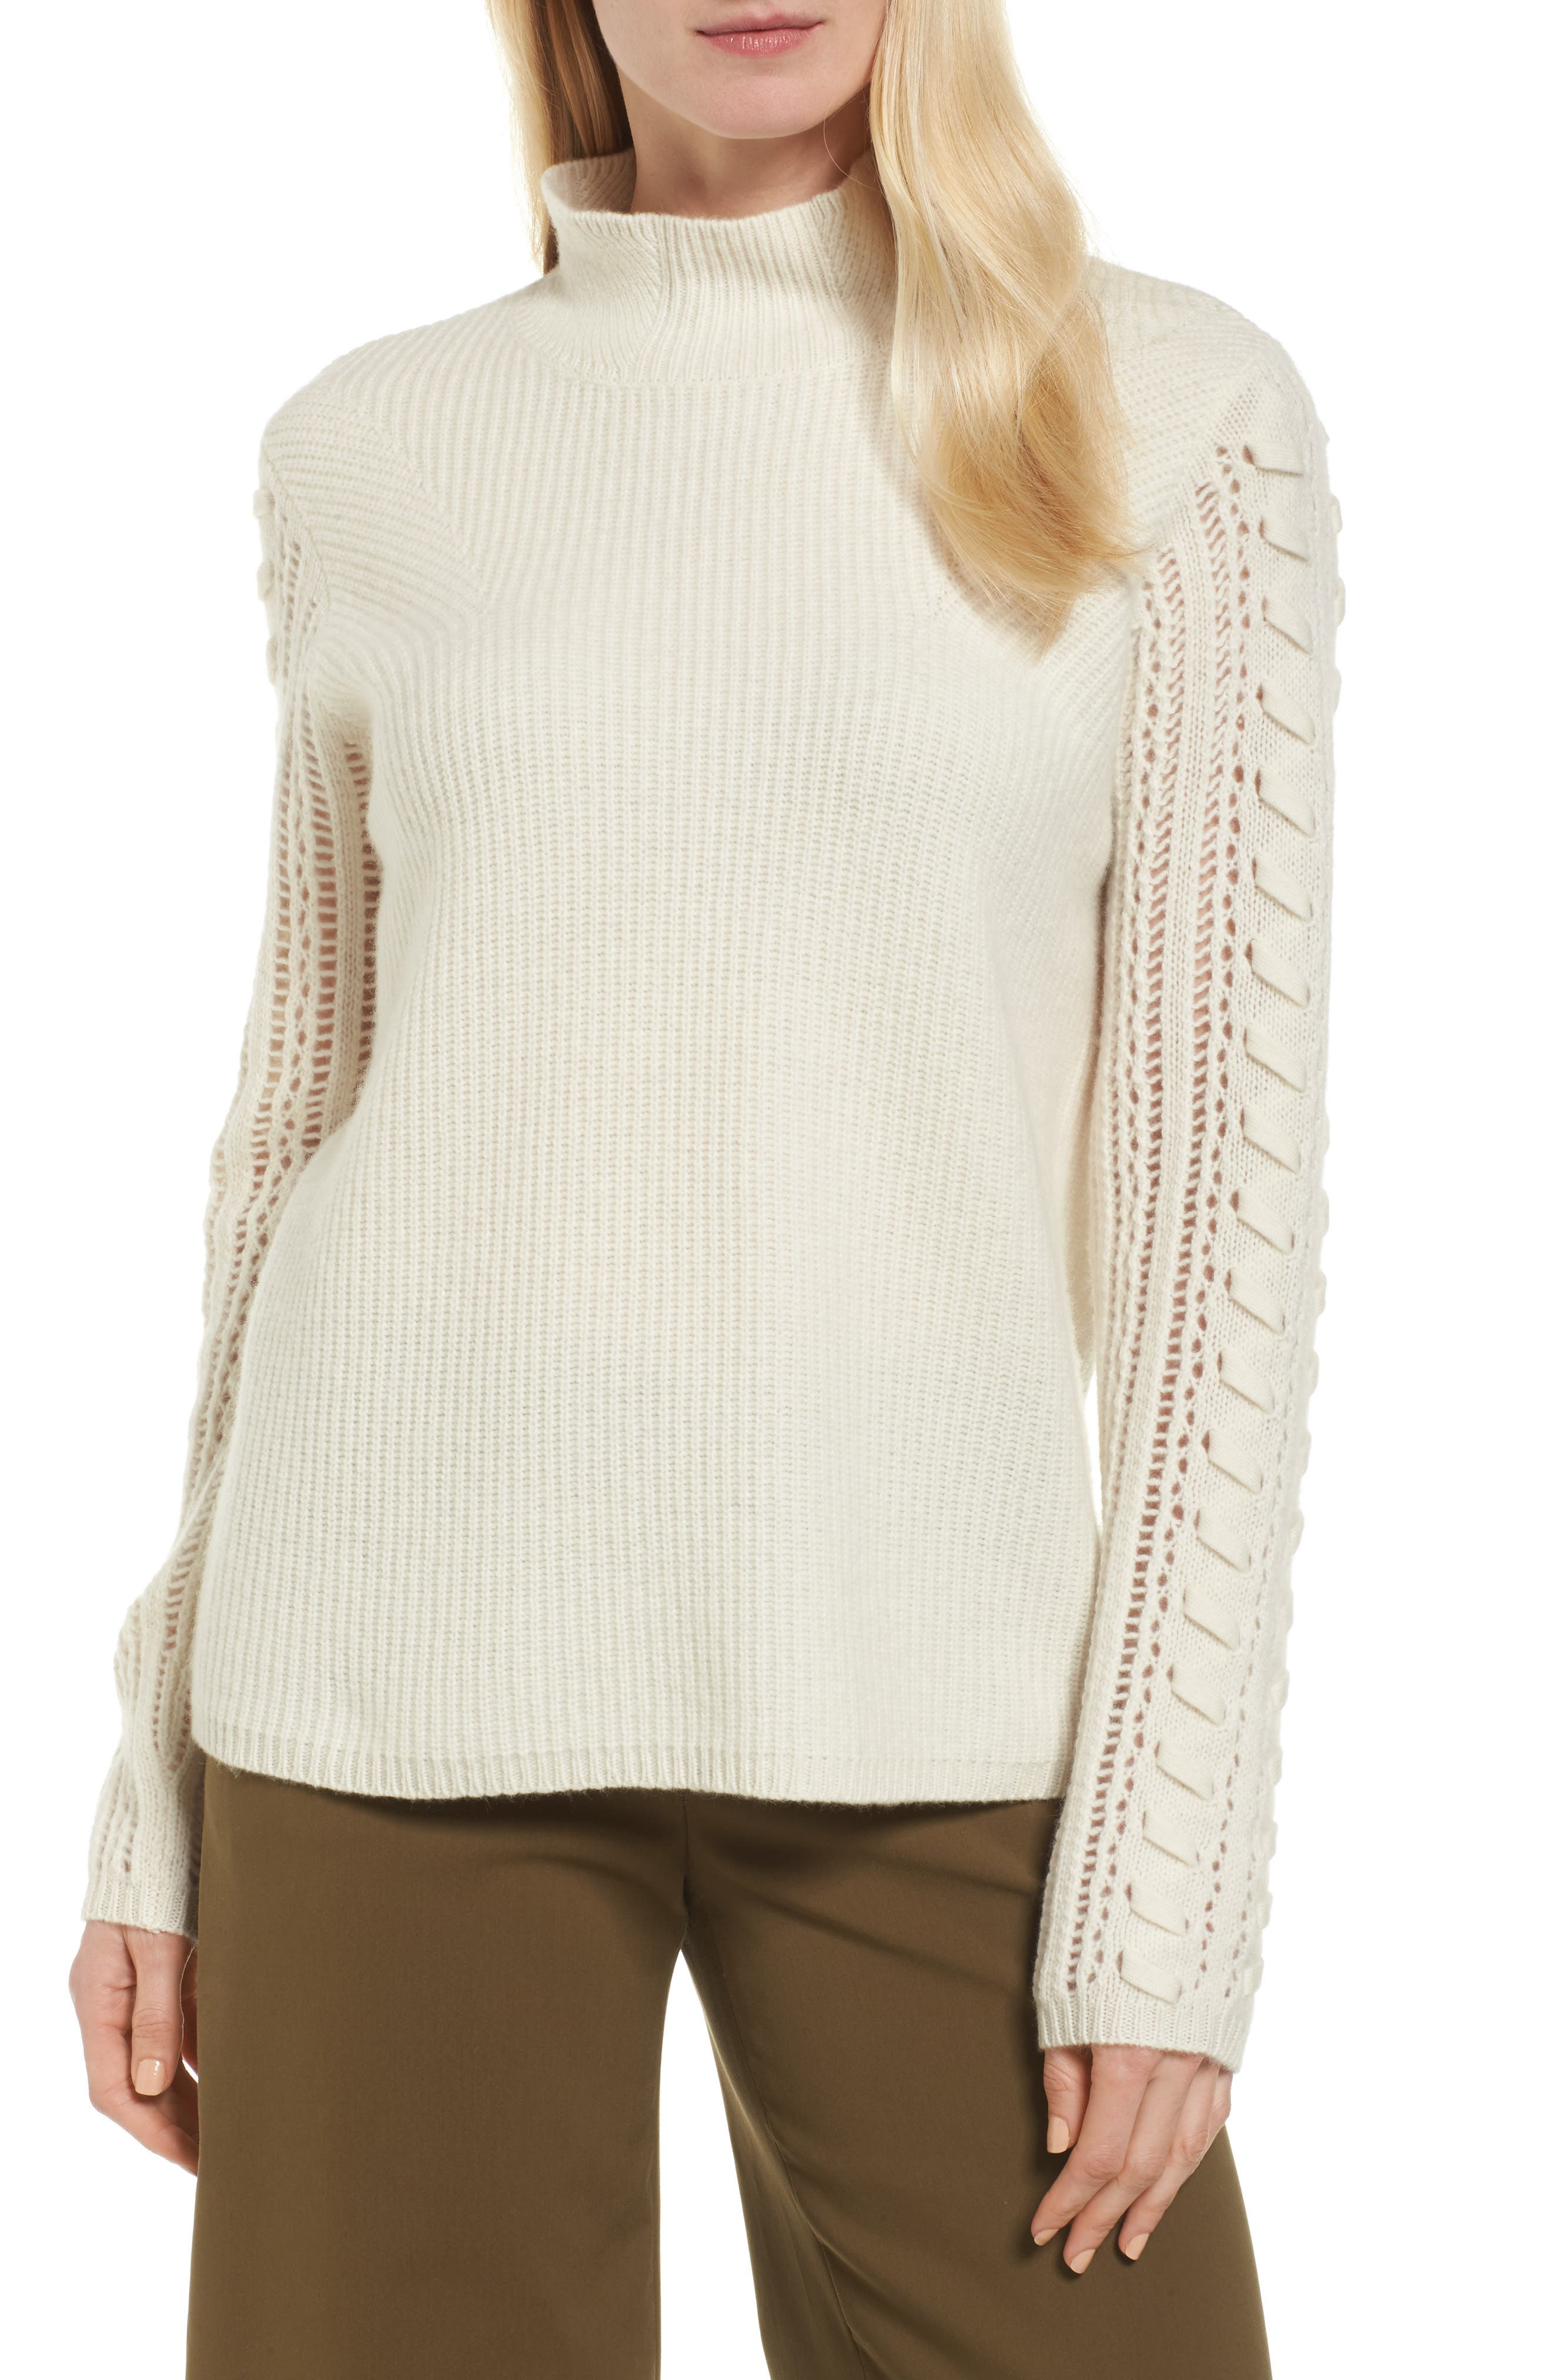 Mixed Stitch Cashmere Sweater,                             Main thumbnail 1, color,                             900